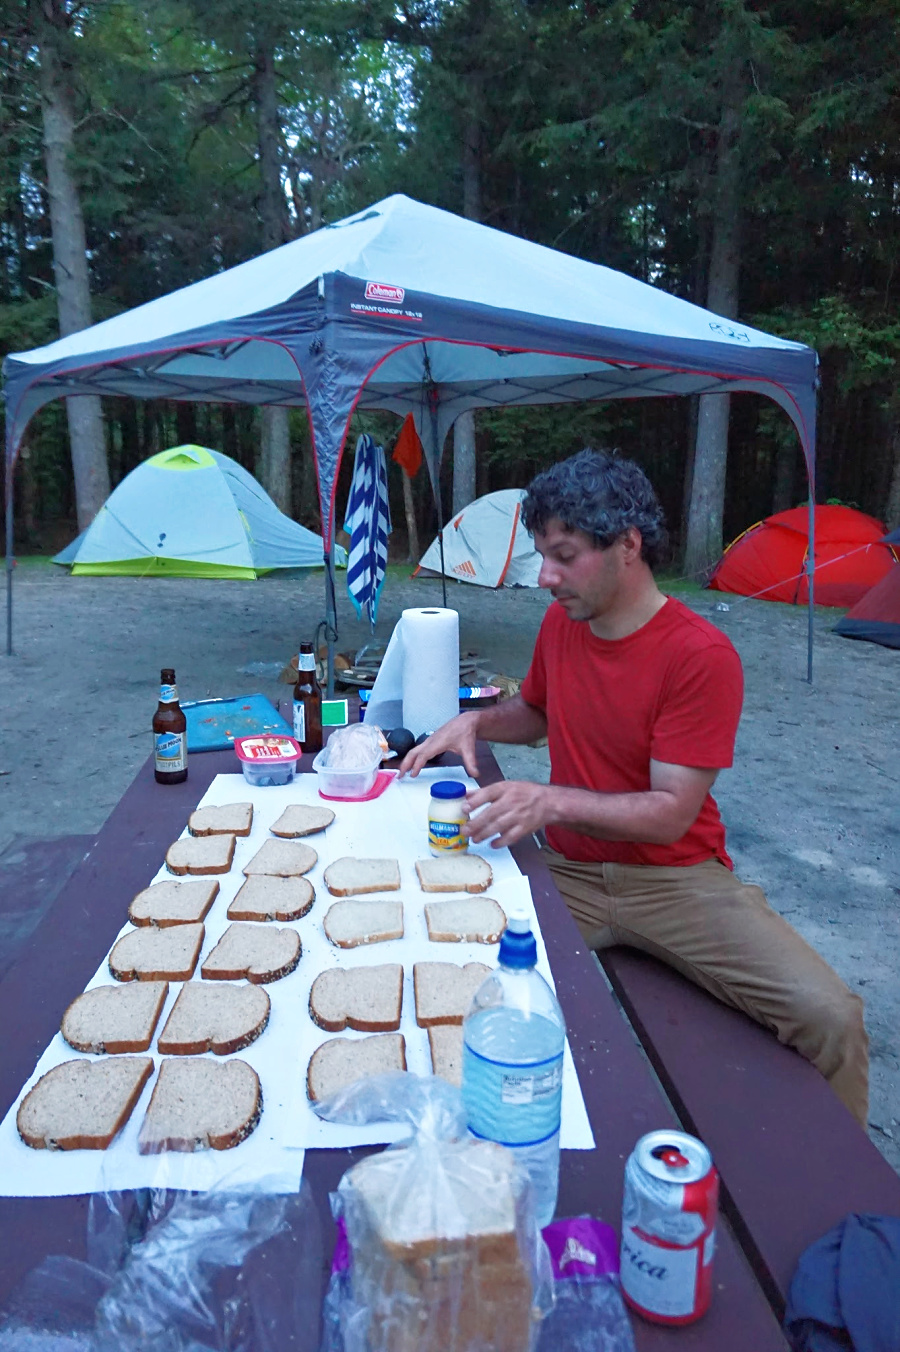 First time camping tips. Sandwiches in making.